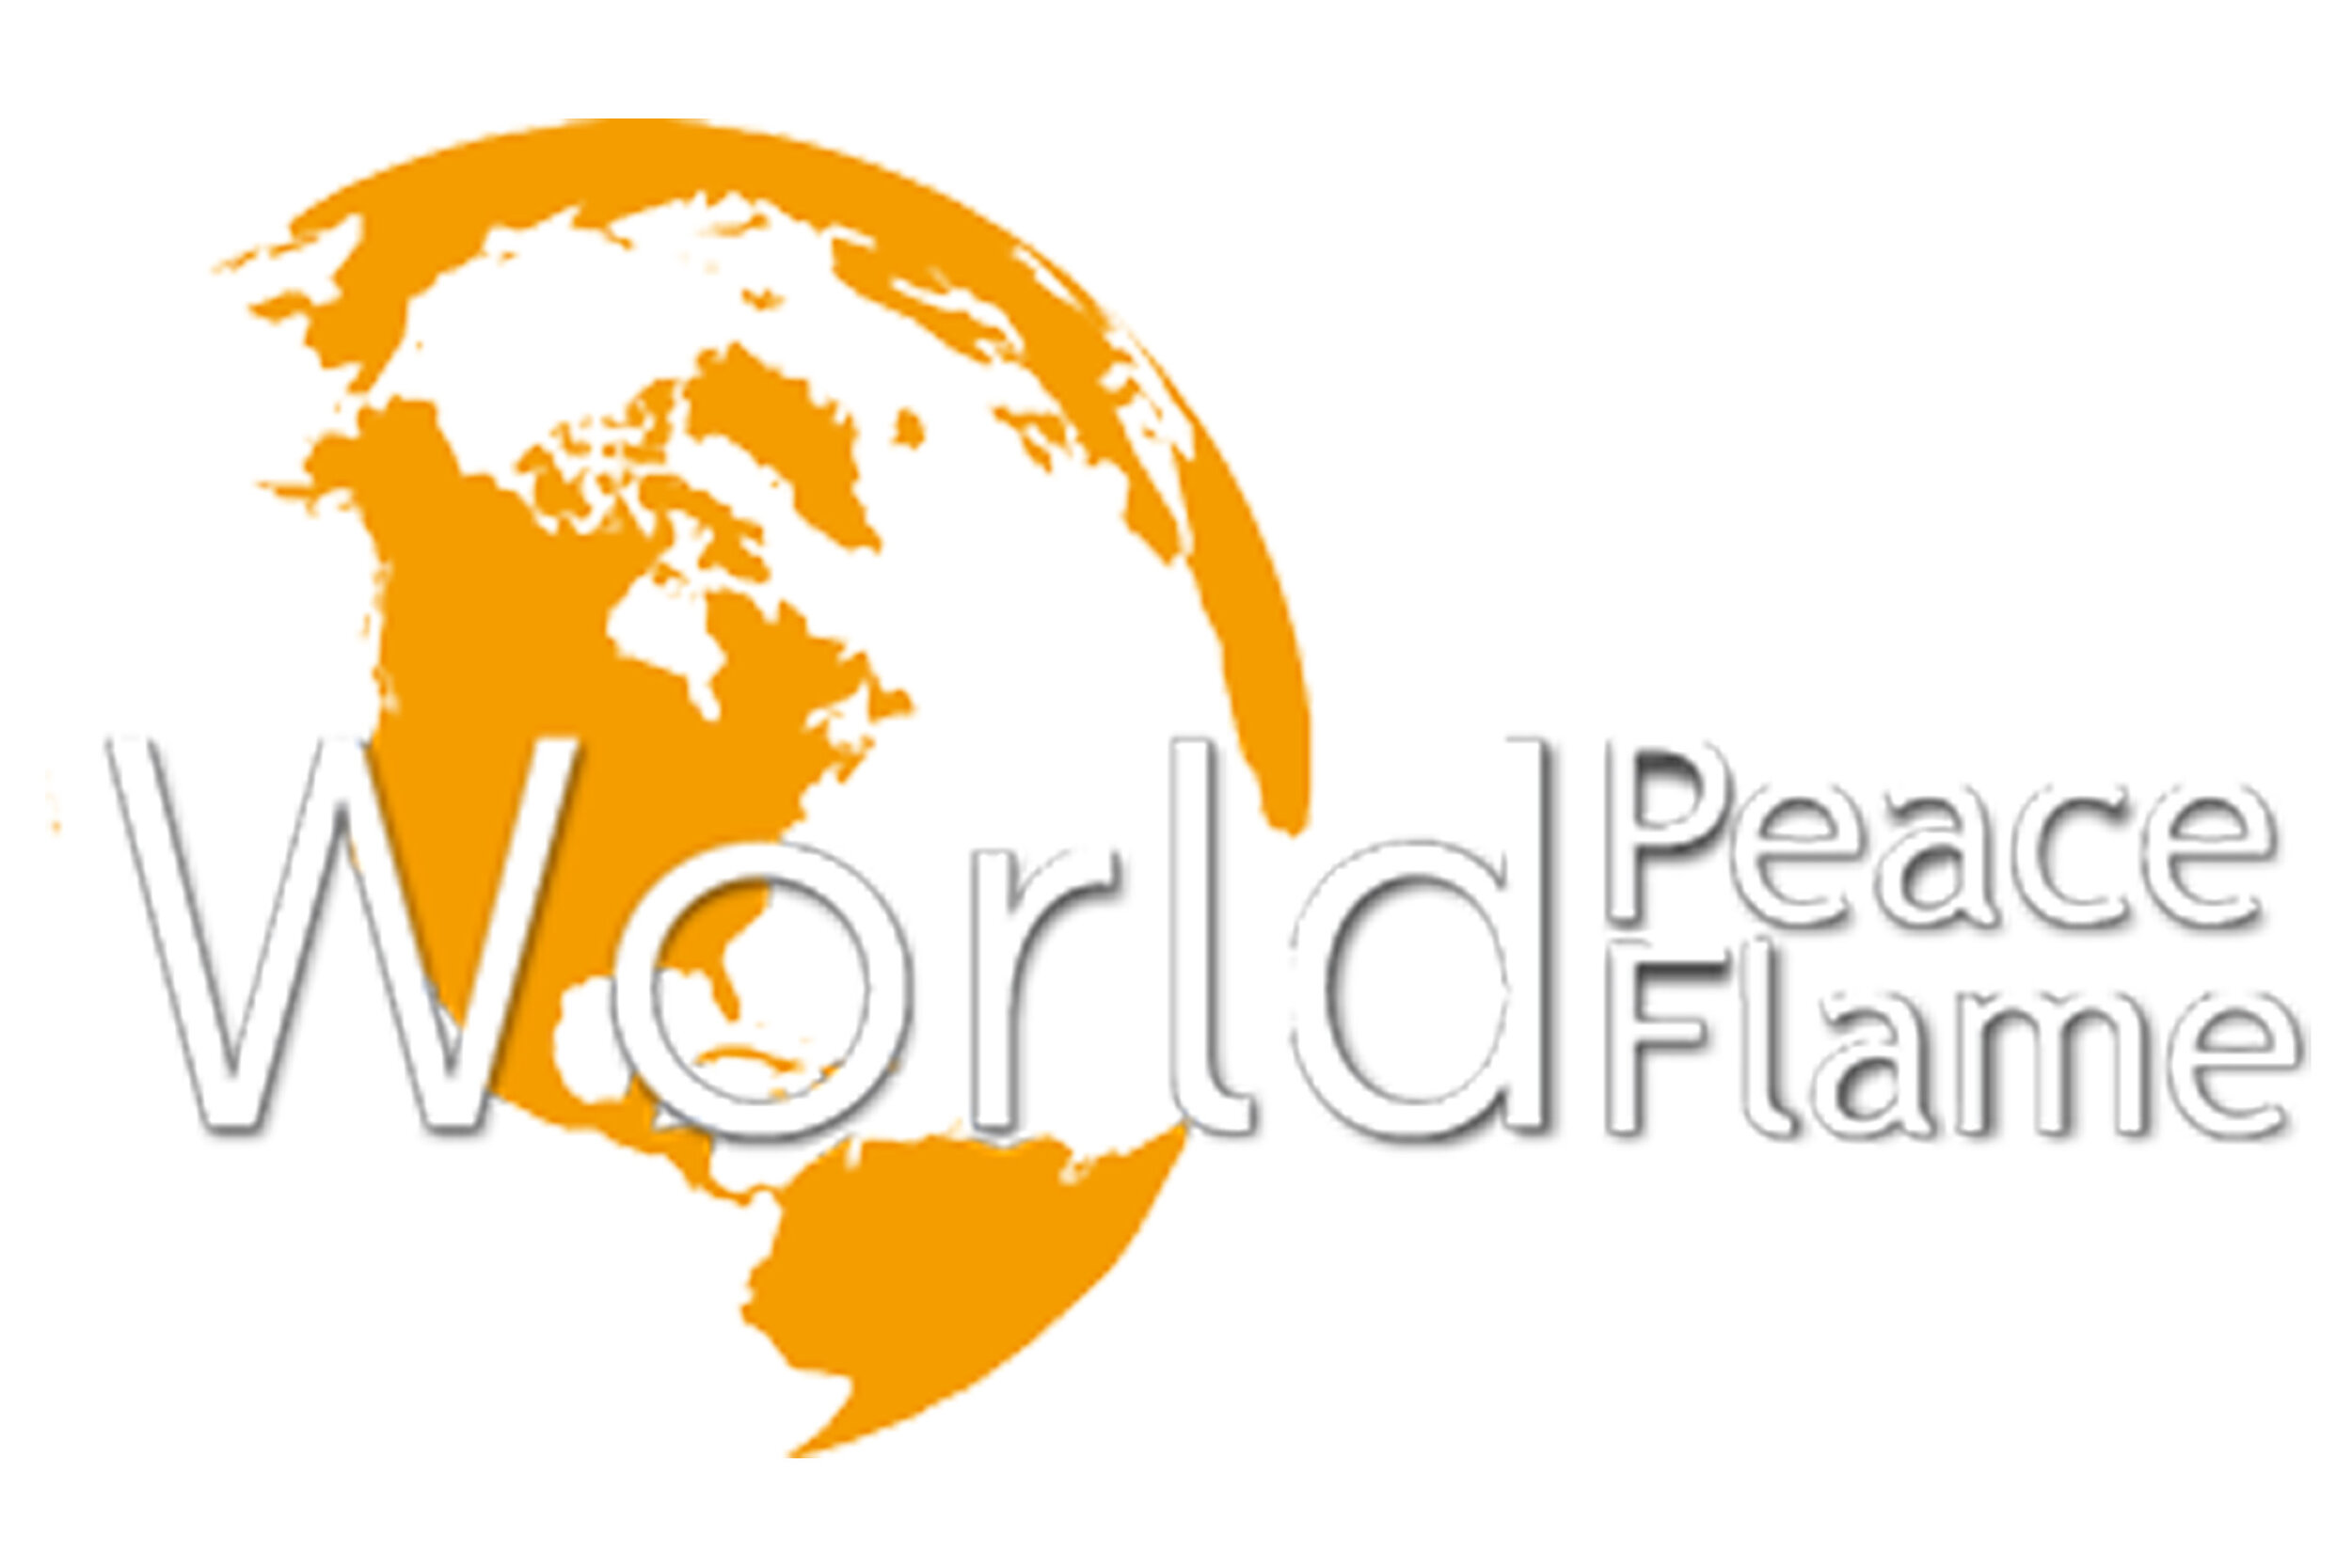 World Peace Flame - Practical global peace initiatives at the local level